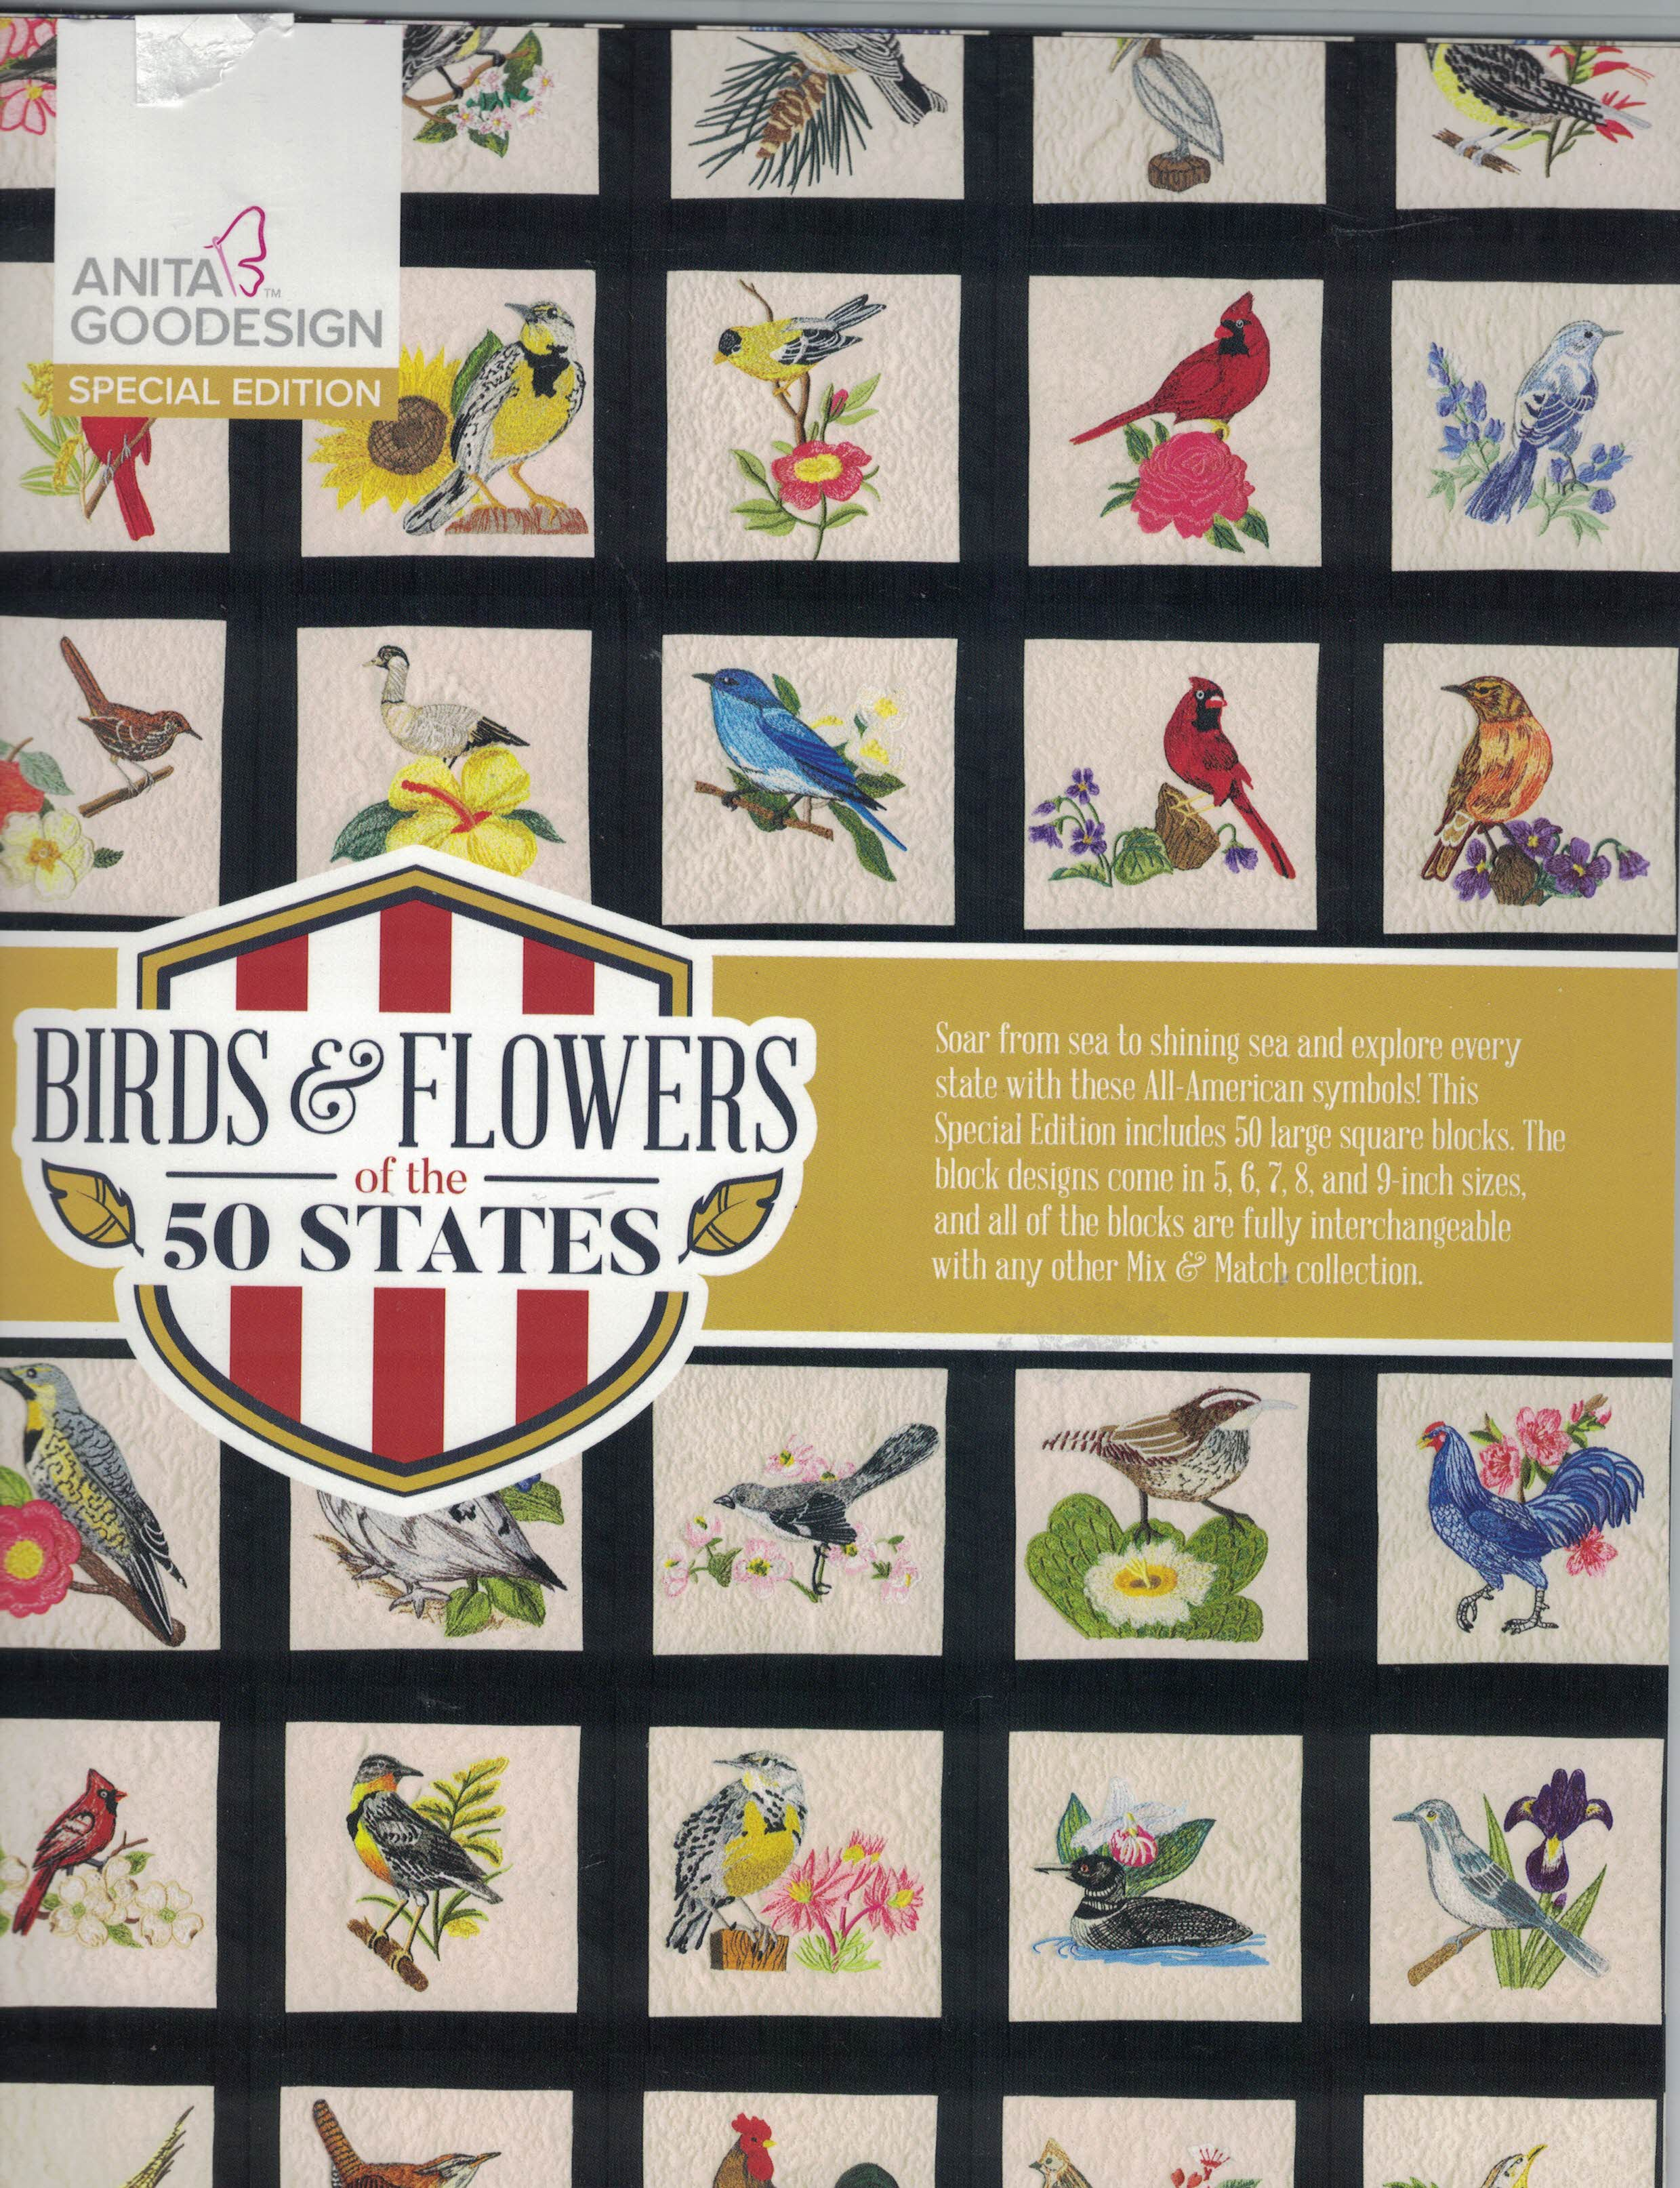 Birds & Flowers of the 50 States Special Edition 30AGSE